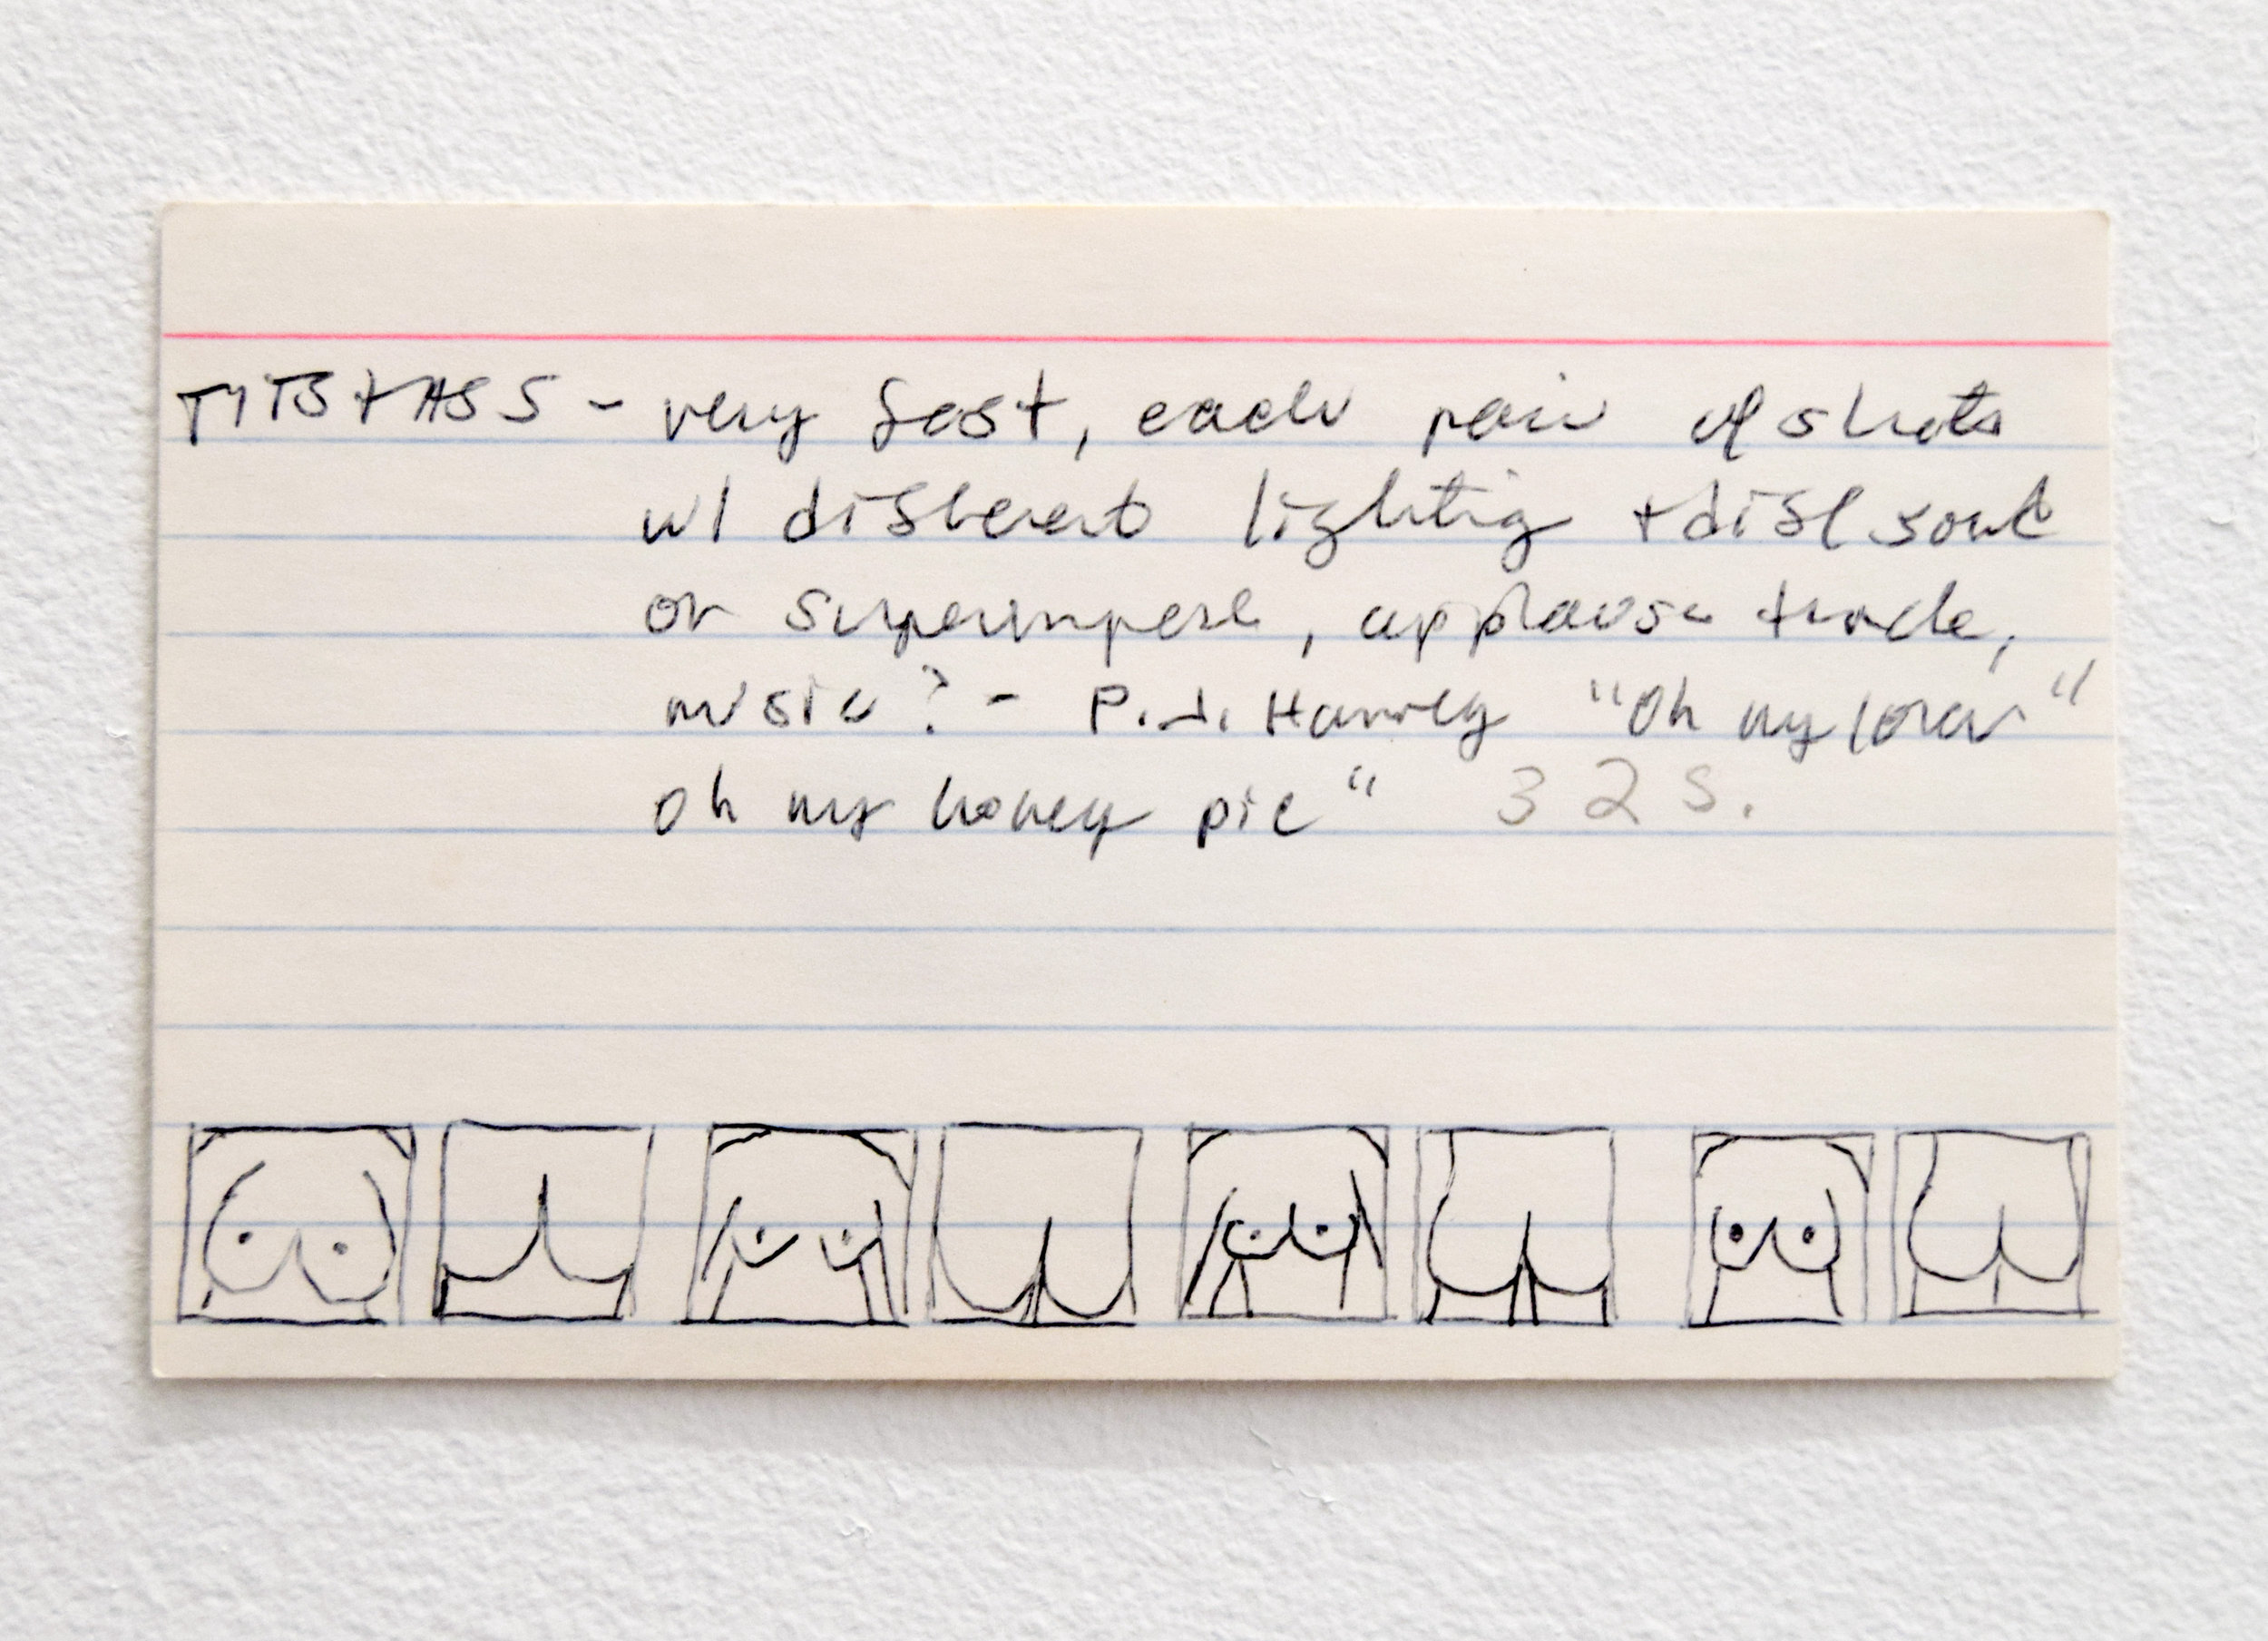 Alix Pearlstein,  Untitled , 1993, pencil on notecard, 5 x 3 inches.